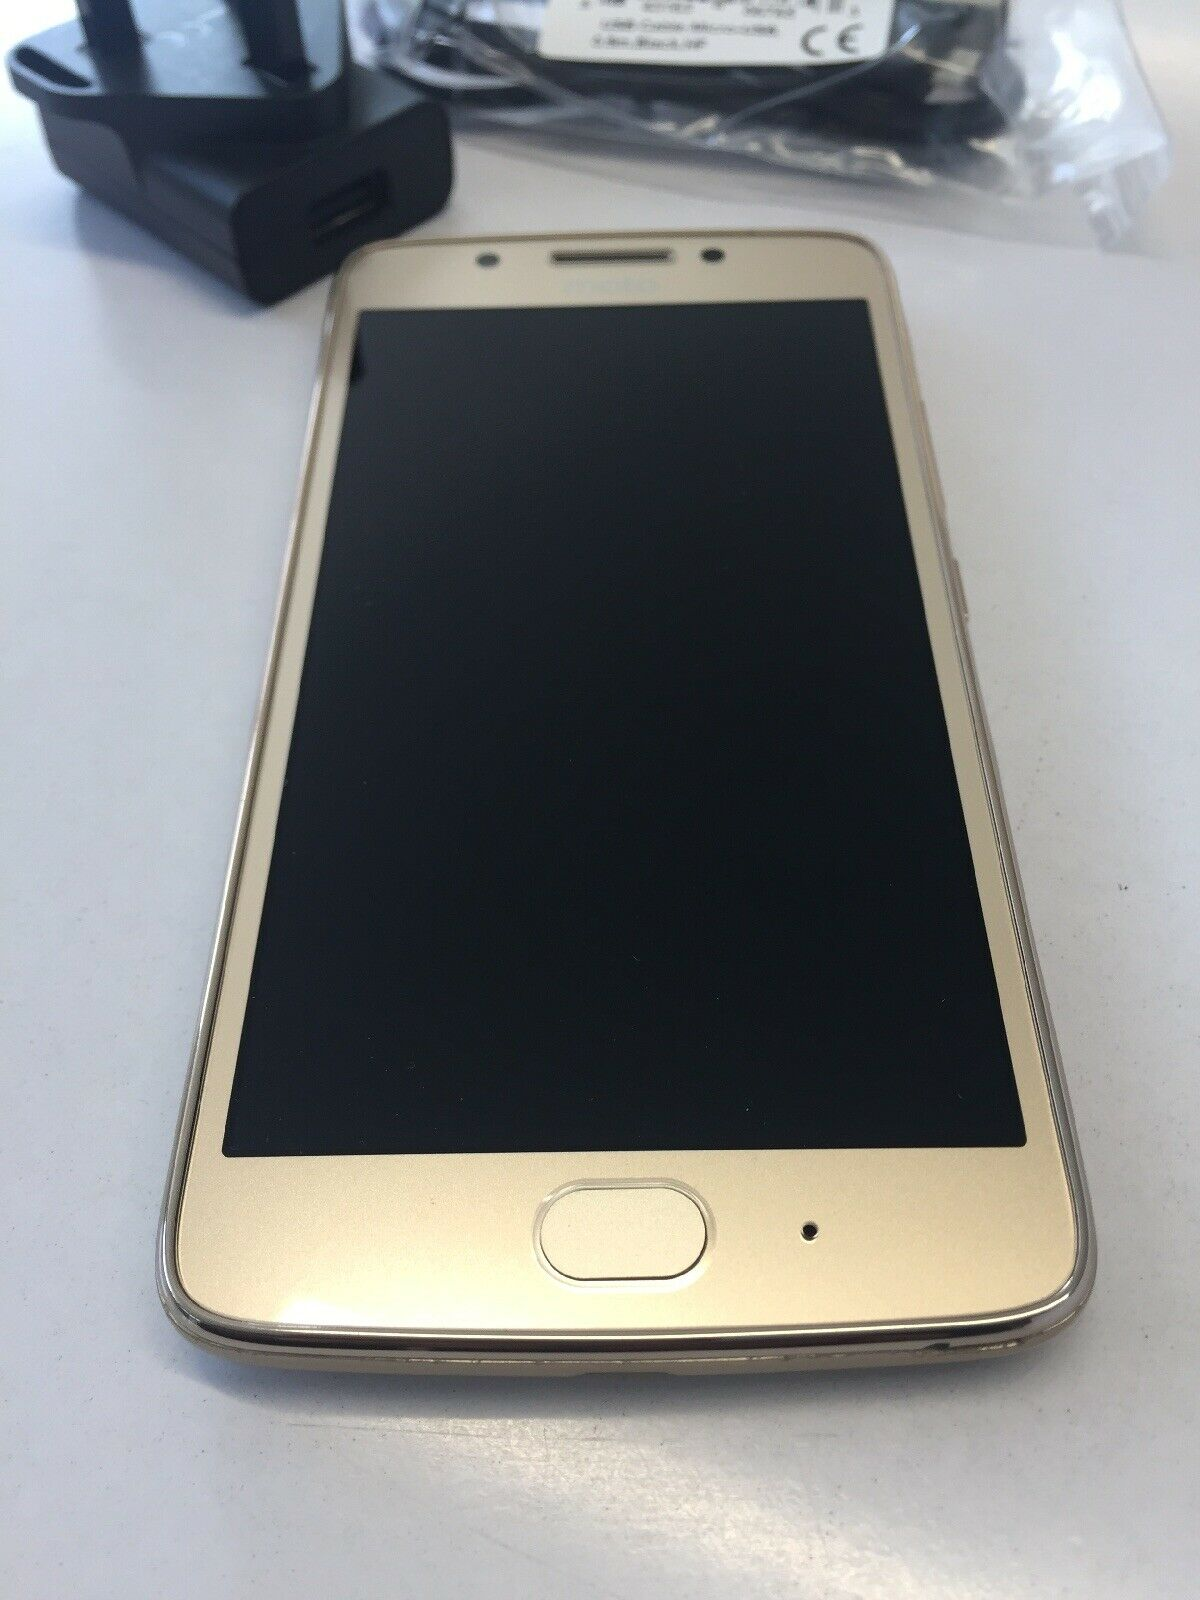 MOTOROLA G5 GOLD SIMFREE UNLOCKED  - NEXT DAY UK